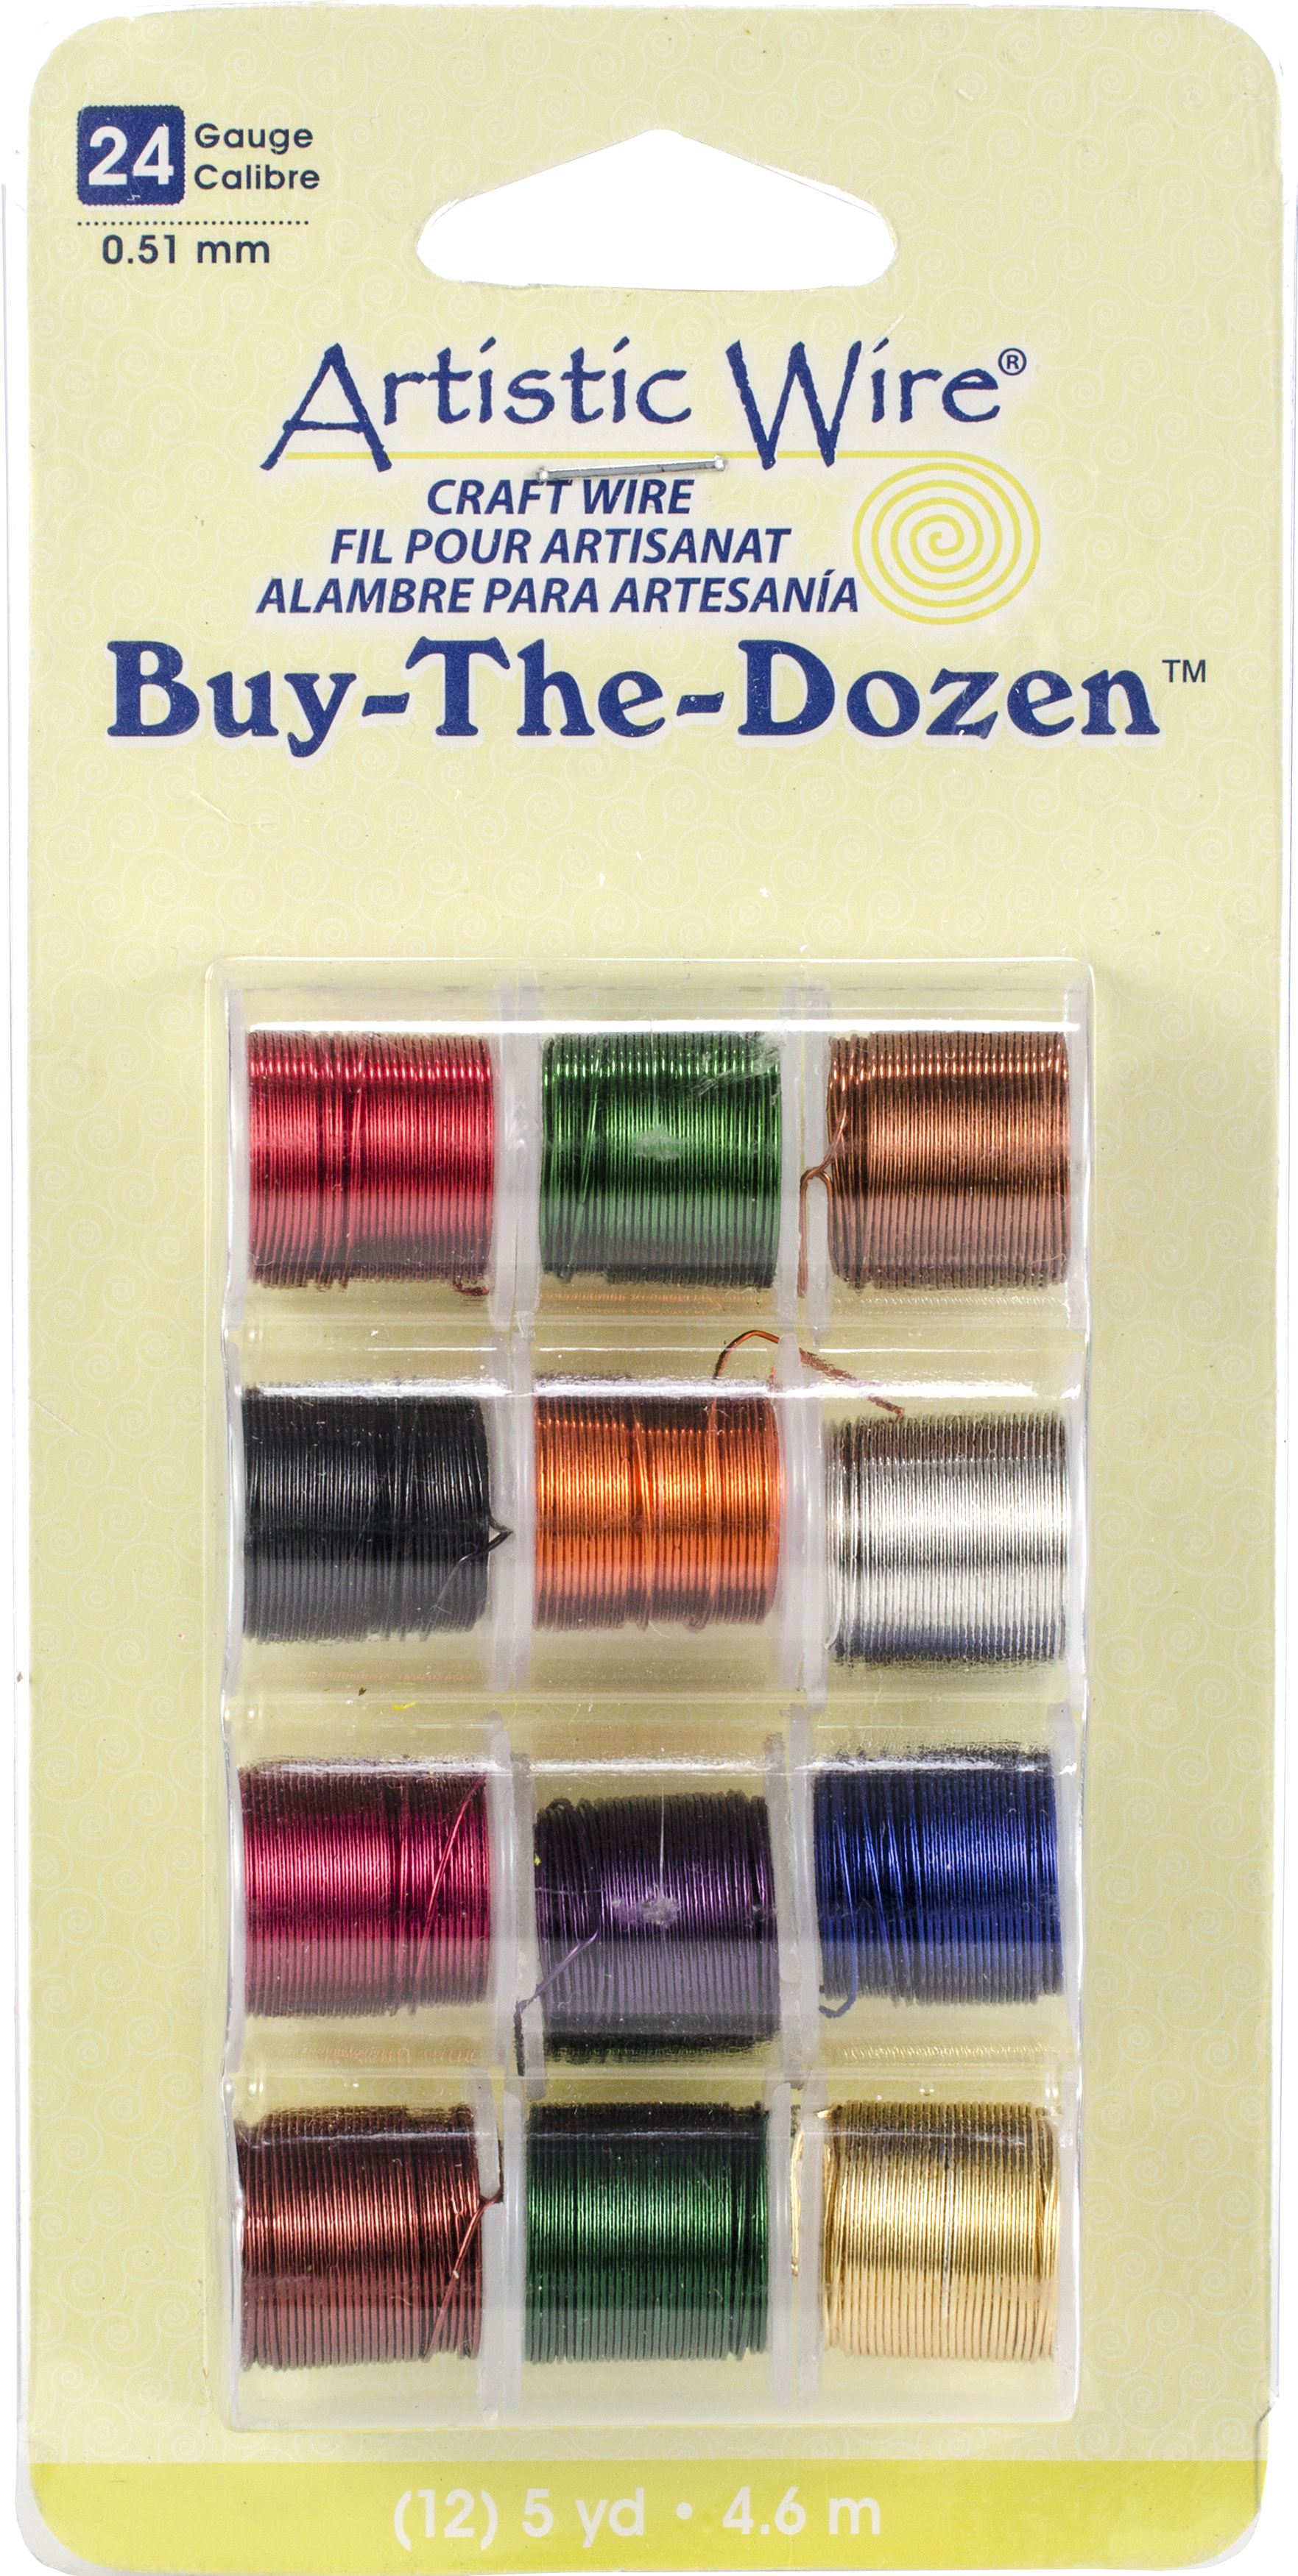 Artistic Wire Buy-The-Dozen 5yd 12/Pkg-24 Gauge